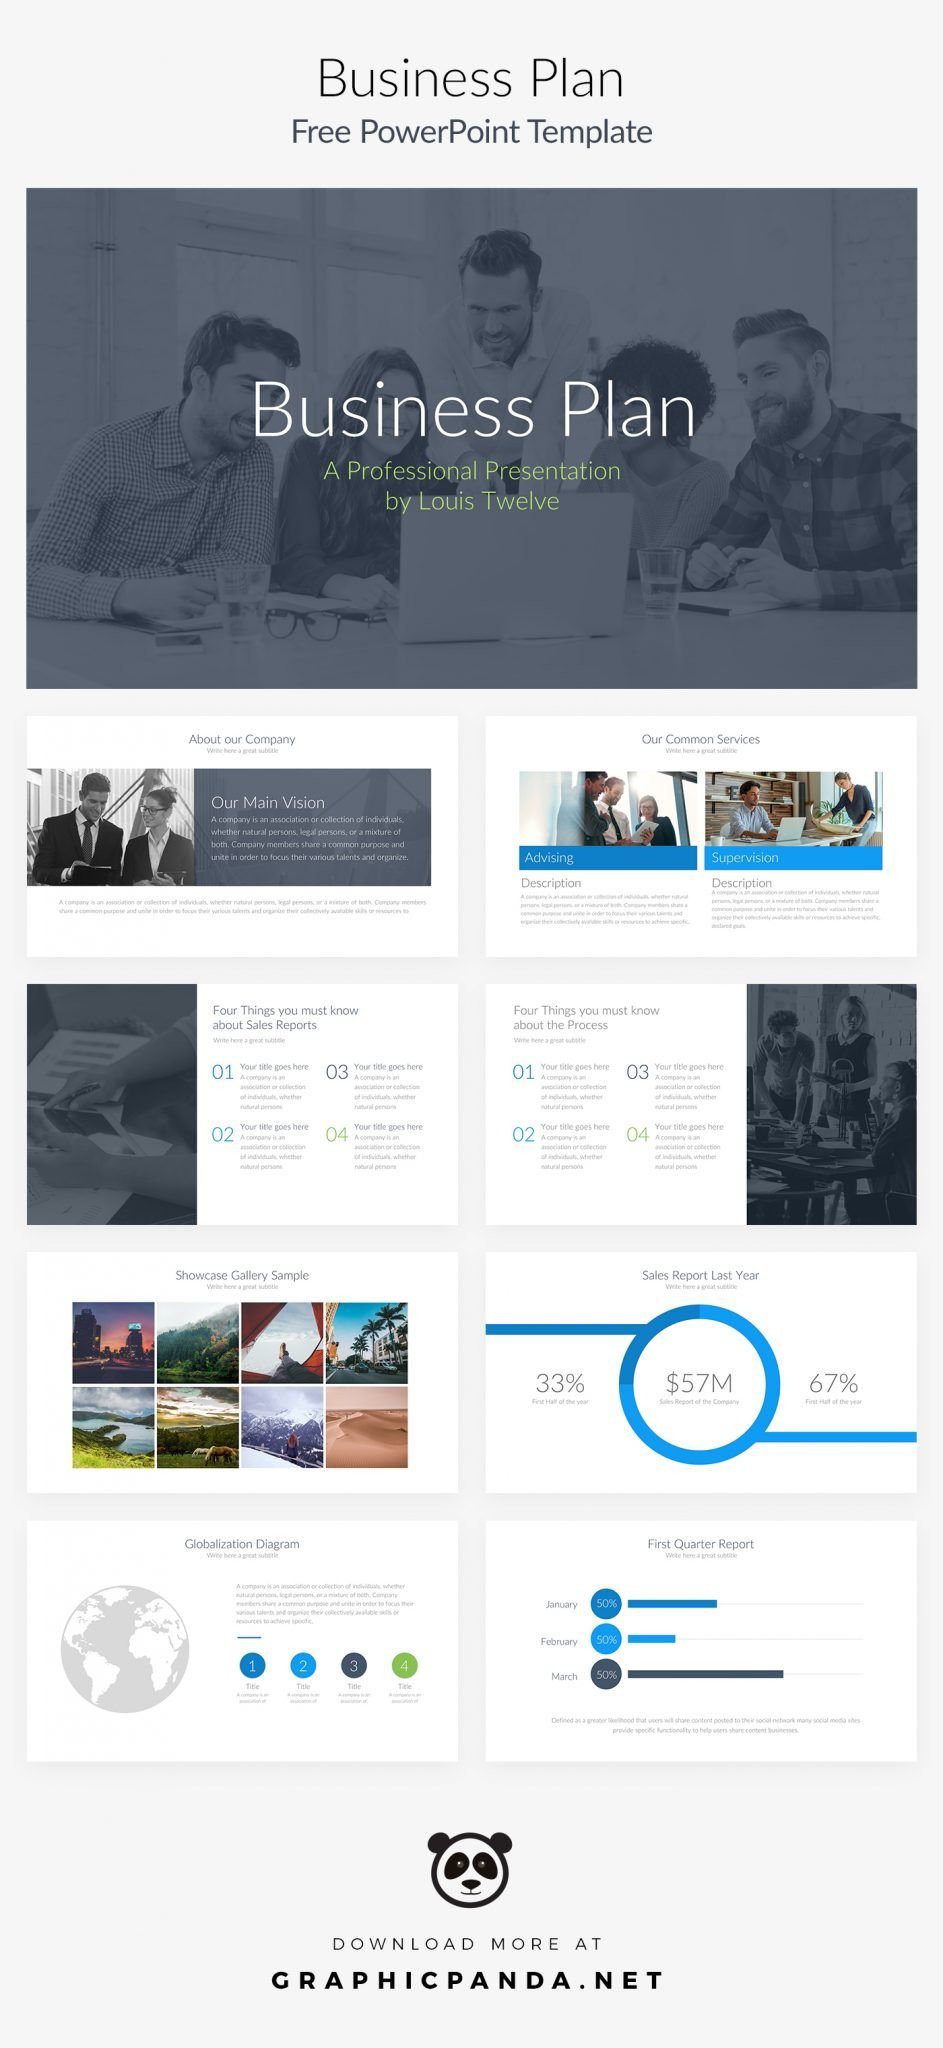 Business plan powerpoint template 10 free slides for business business plan powerpoint template 10 free slides for business proposal accmission Choice Image